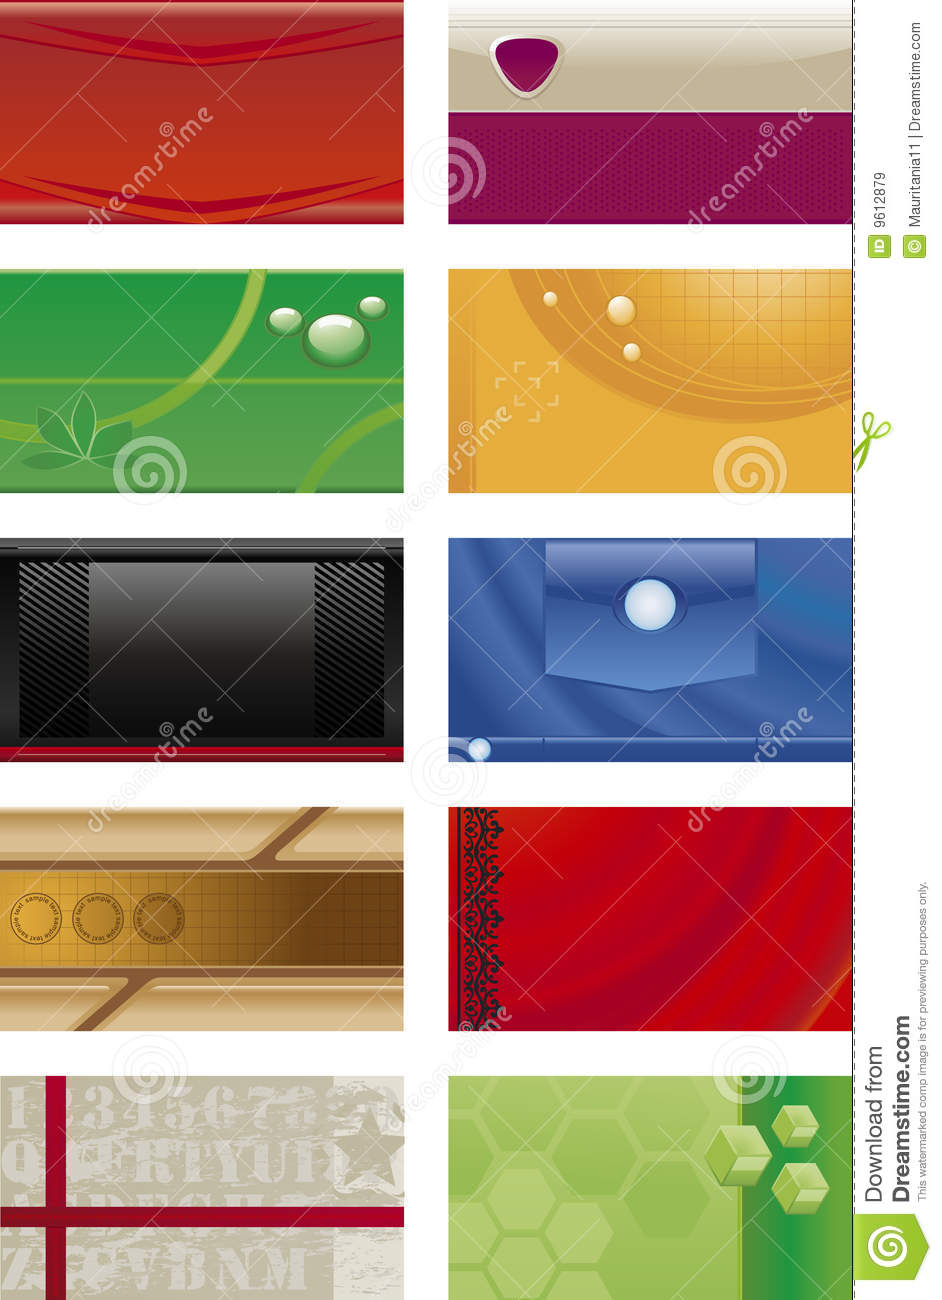 Business Cards Backgrounds Royalty Free Stock Images